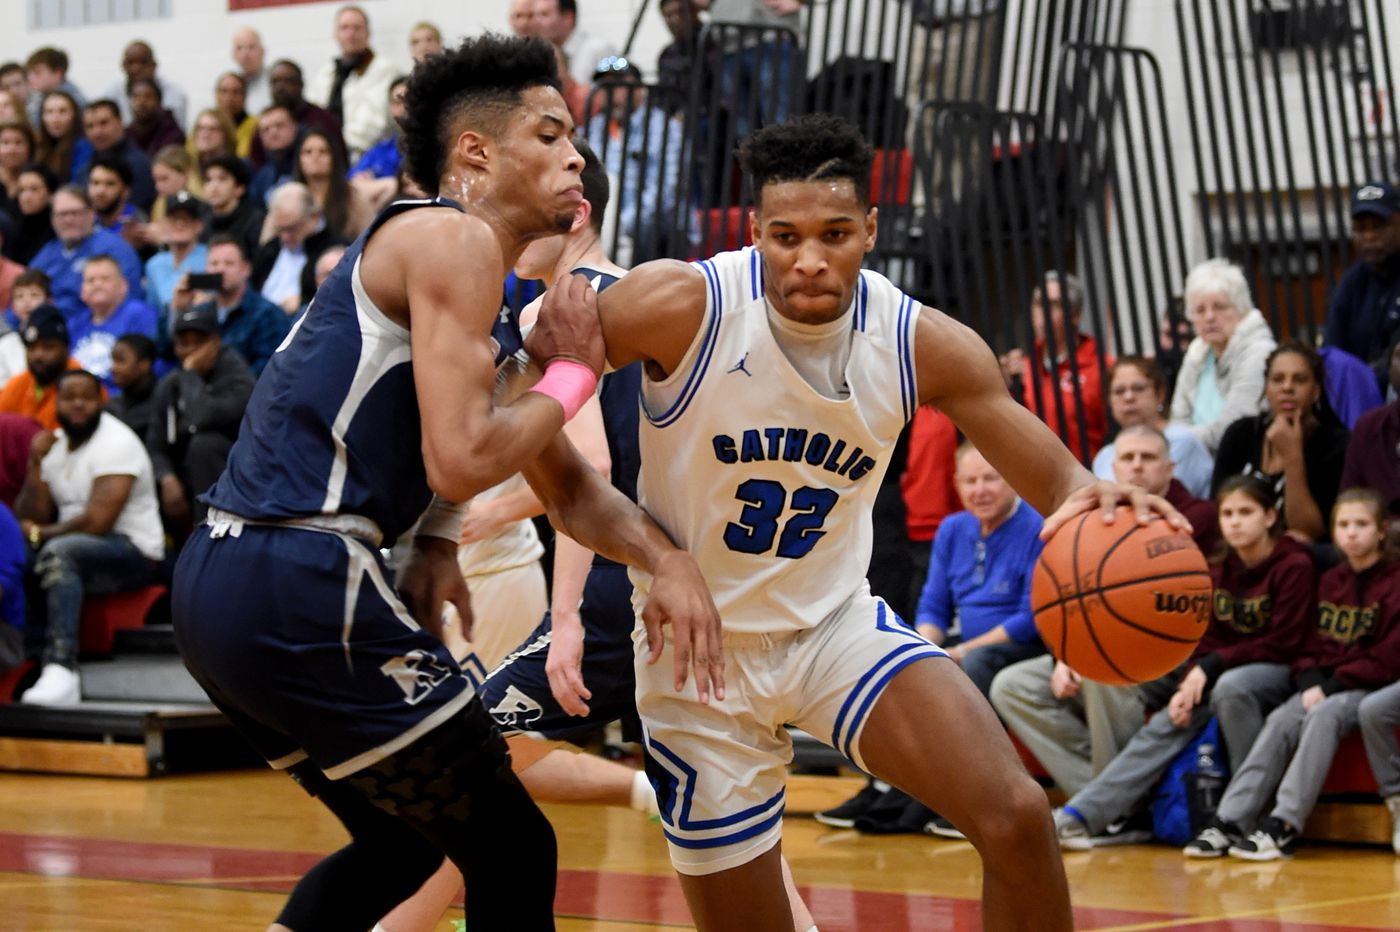 Taj Thweatt of Wildwood Catholic leads All-South Jersey basketball team as player of the year